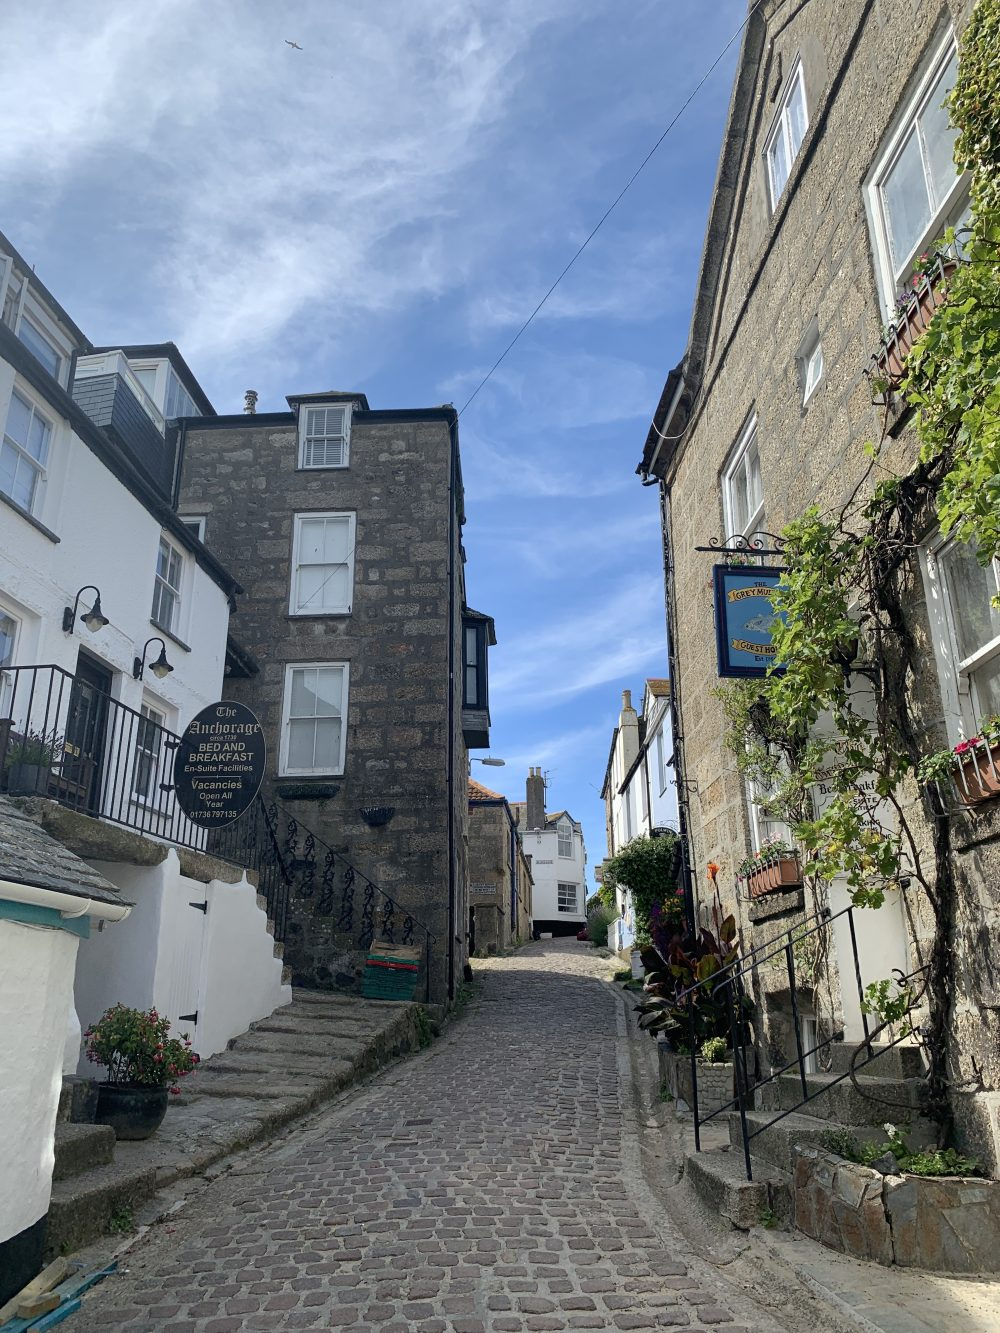 St Ives streets in Cornwall